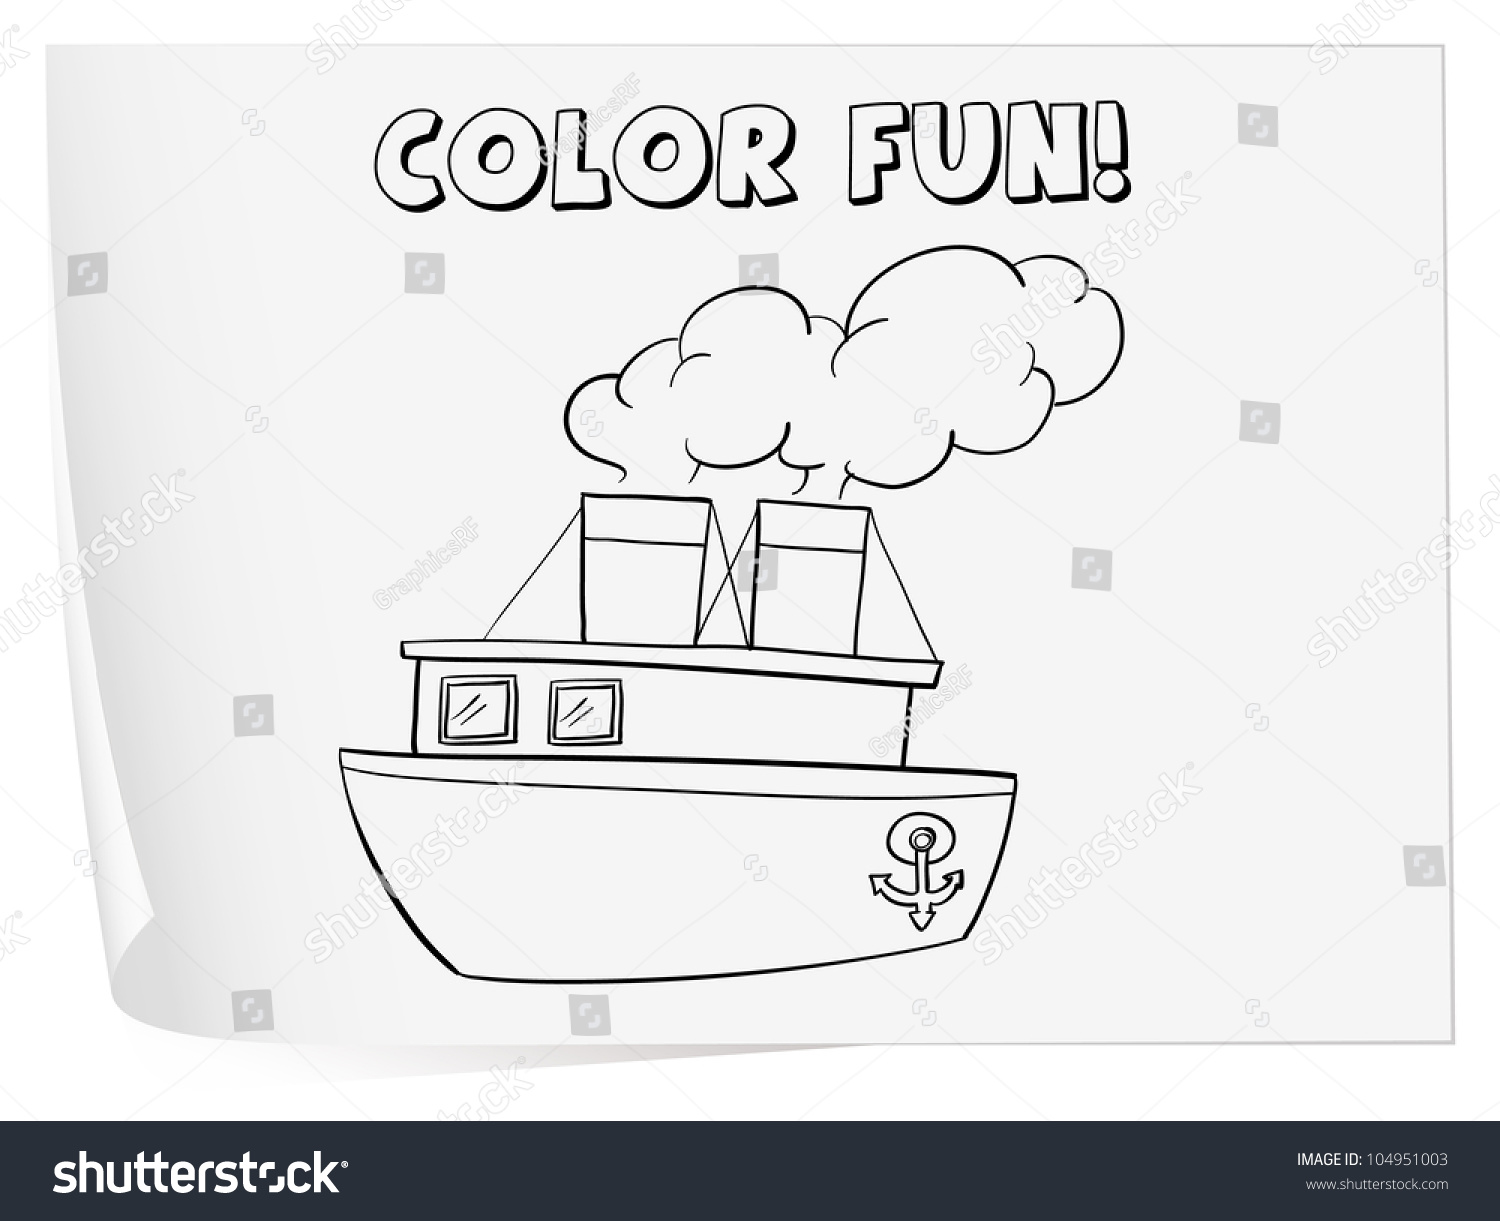 illustration of a colouring worksheet boat eps vector format also available in my portfolio. Black Bedroom Furniture Sets. Home Design Ideas